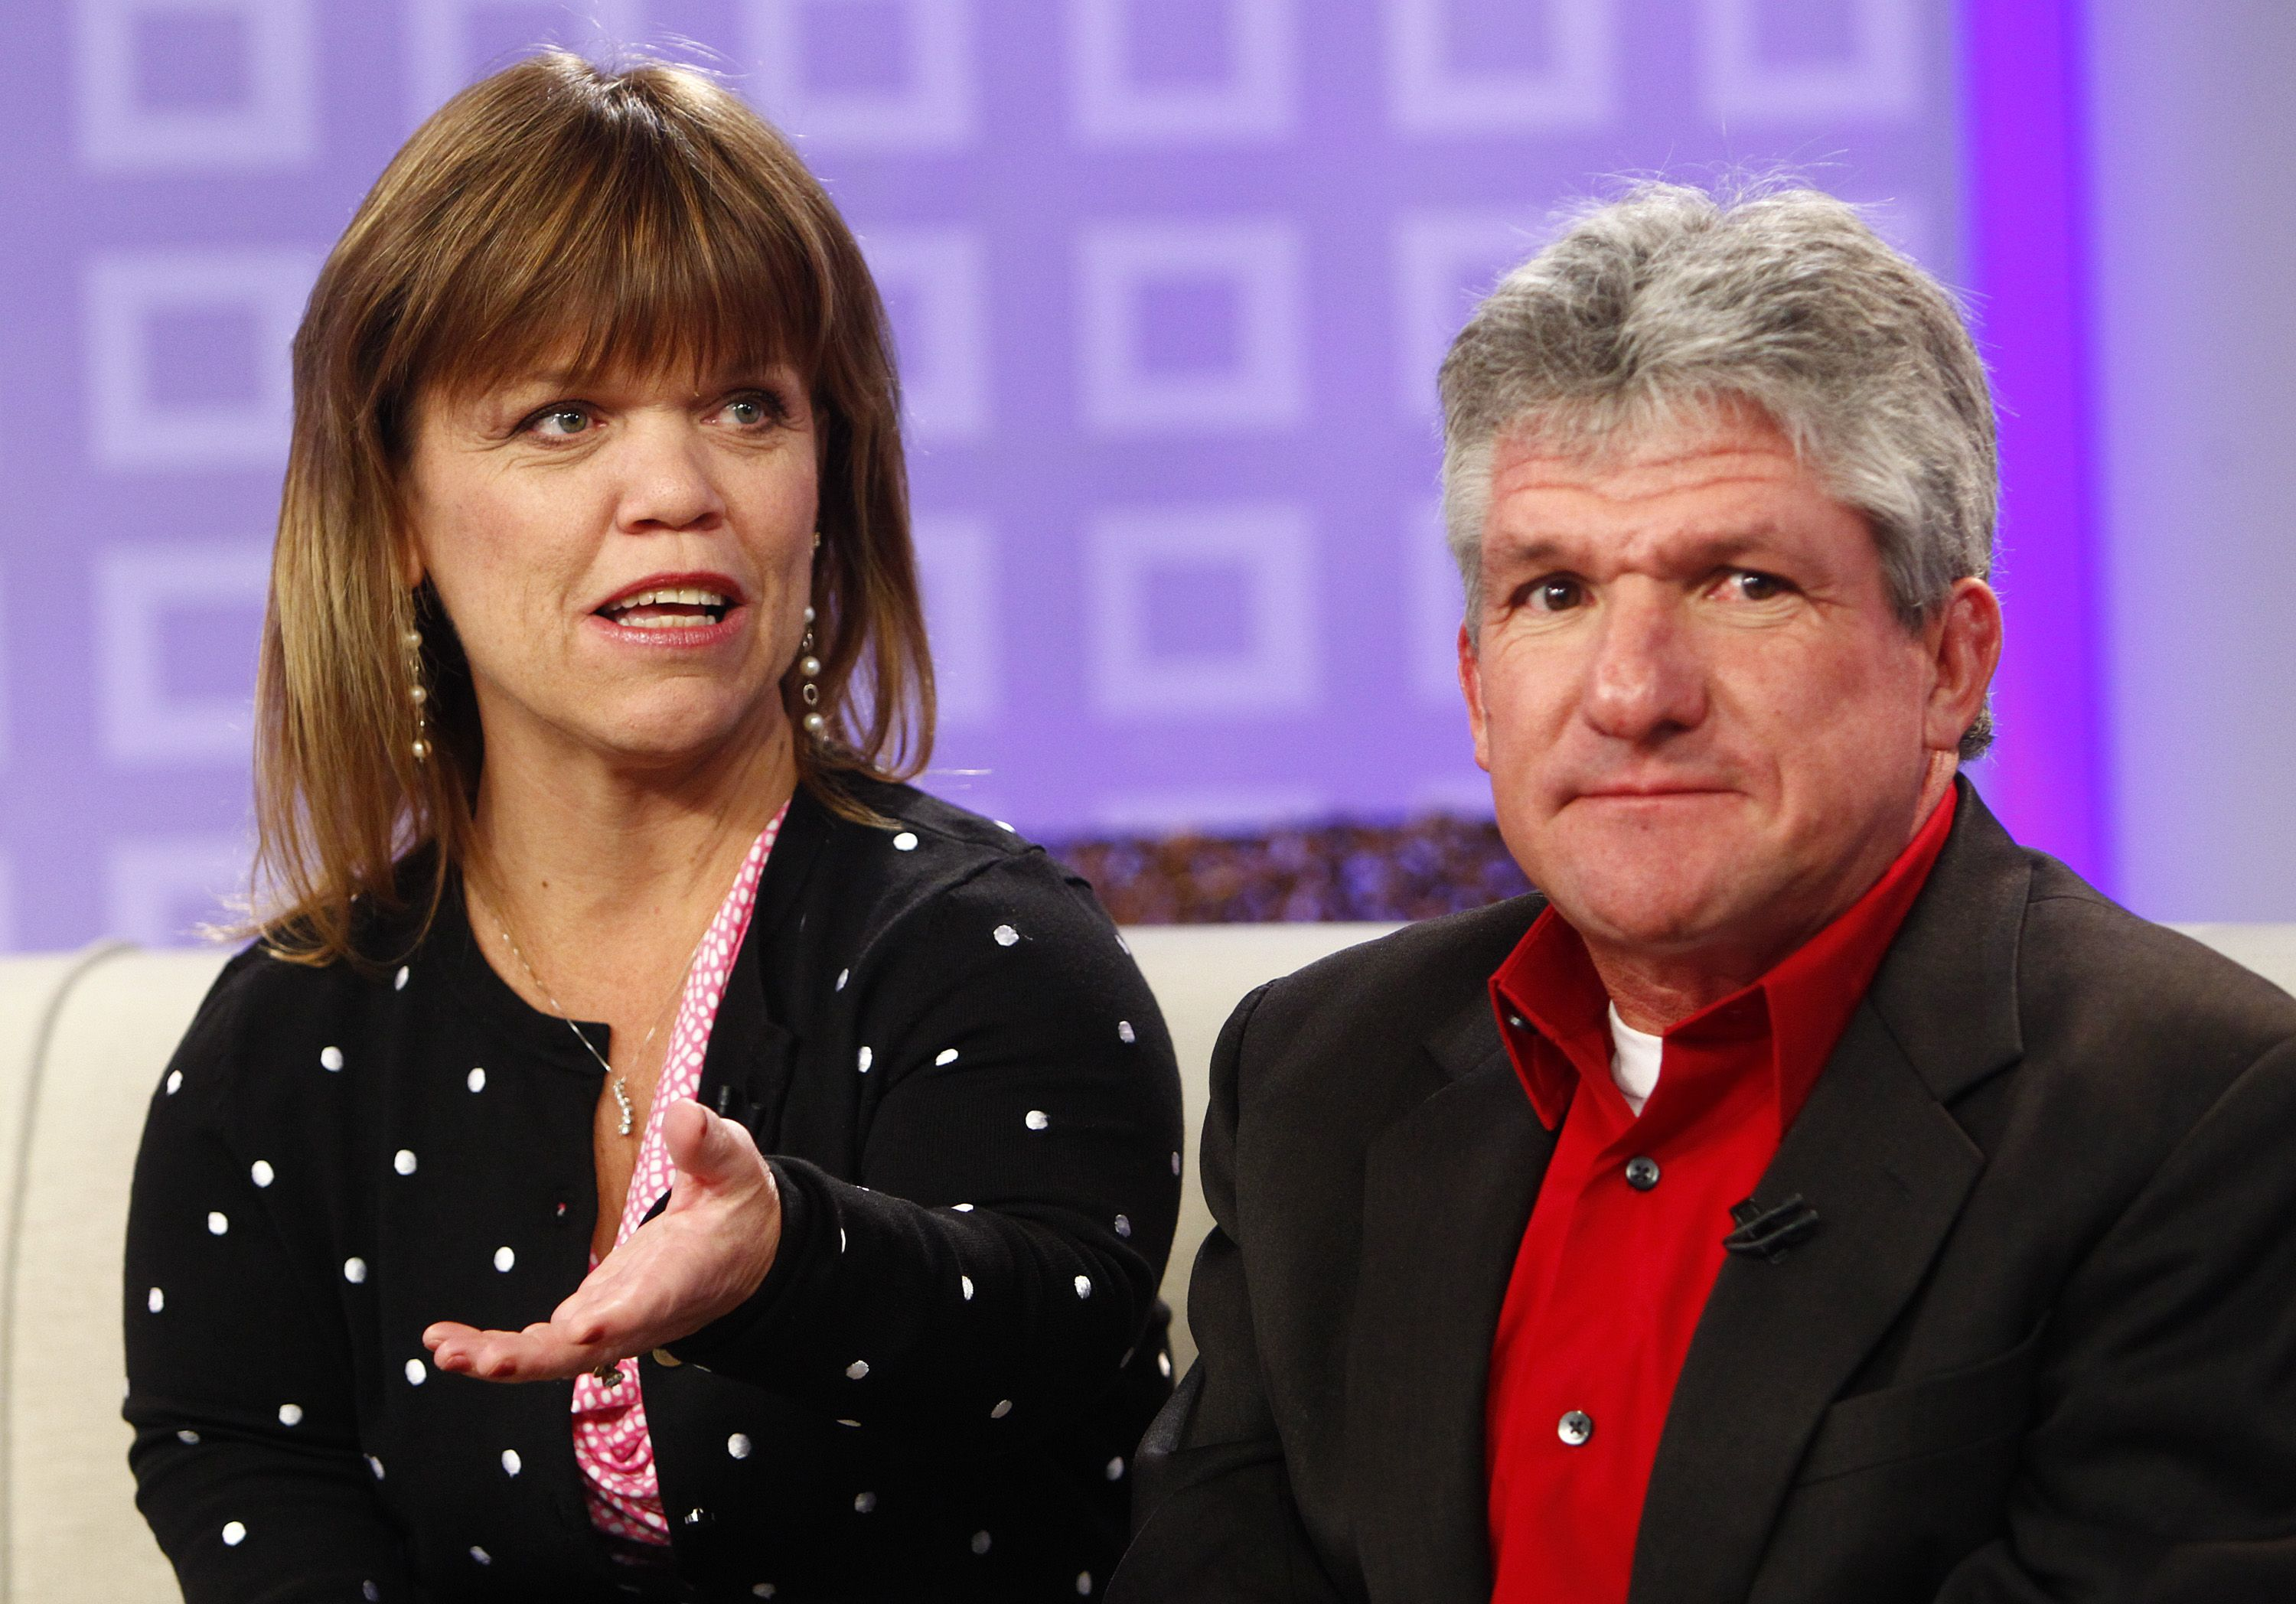 The Real Reason 'Little People, Big World' Stars Amy and Matt Roloff